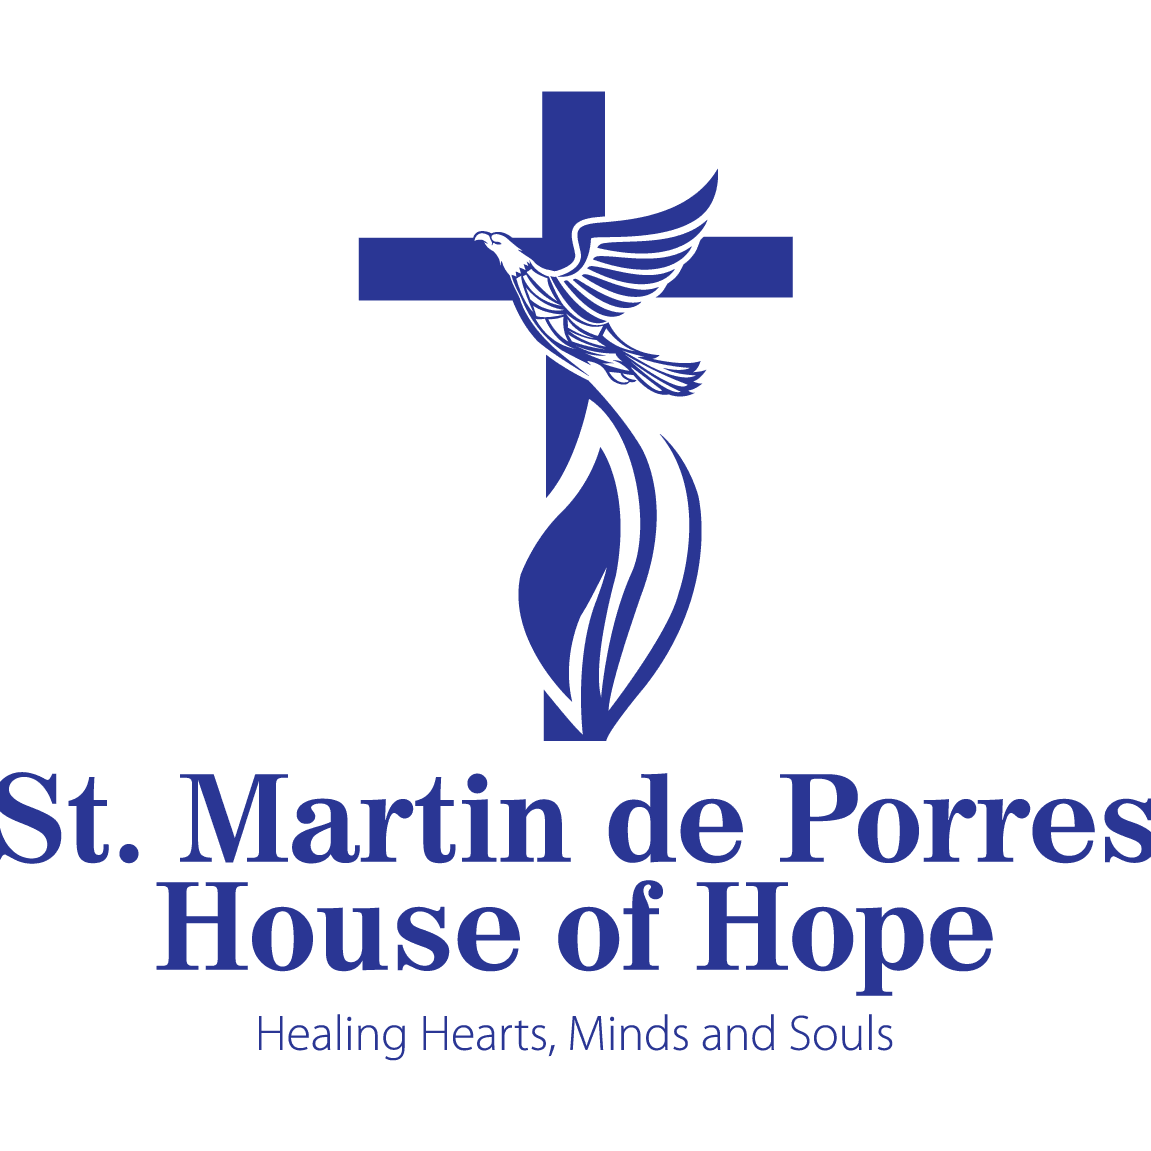 St. Martin de Porres House of Hope